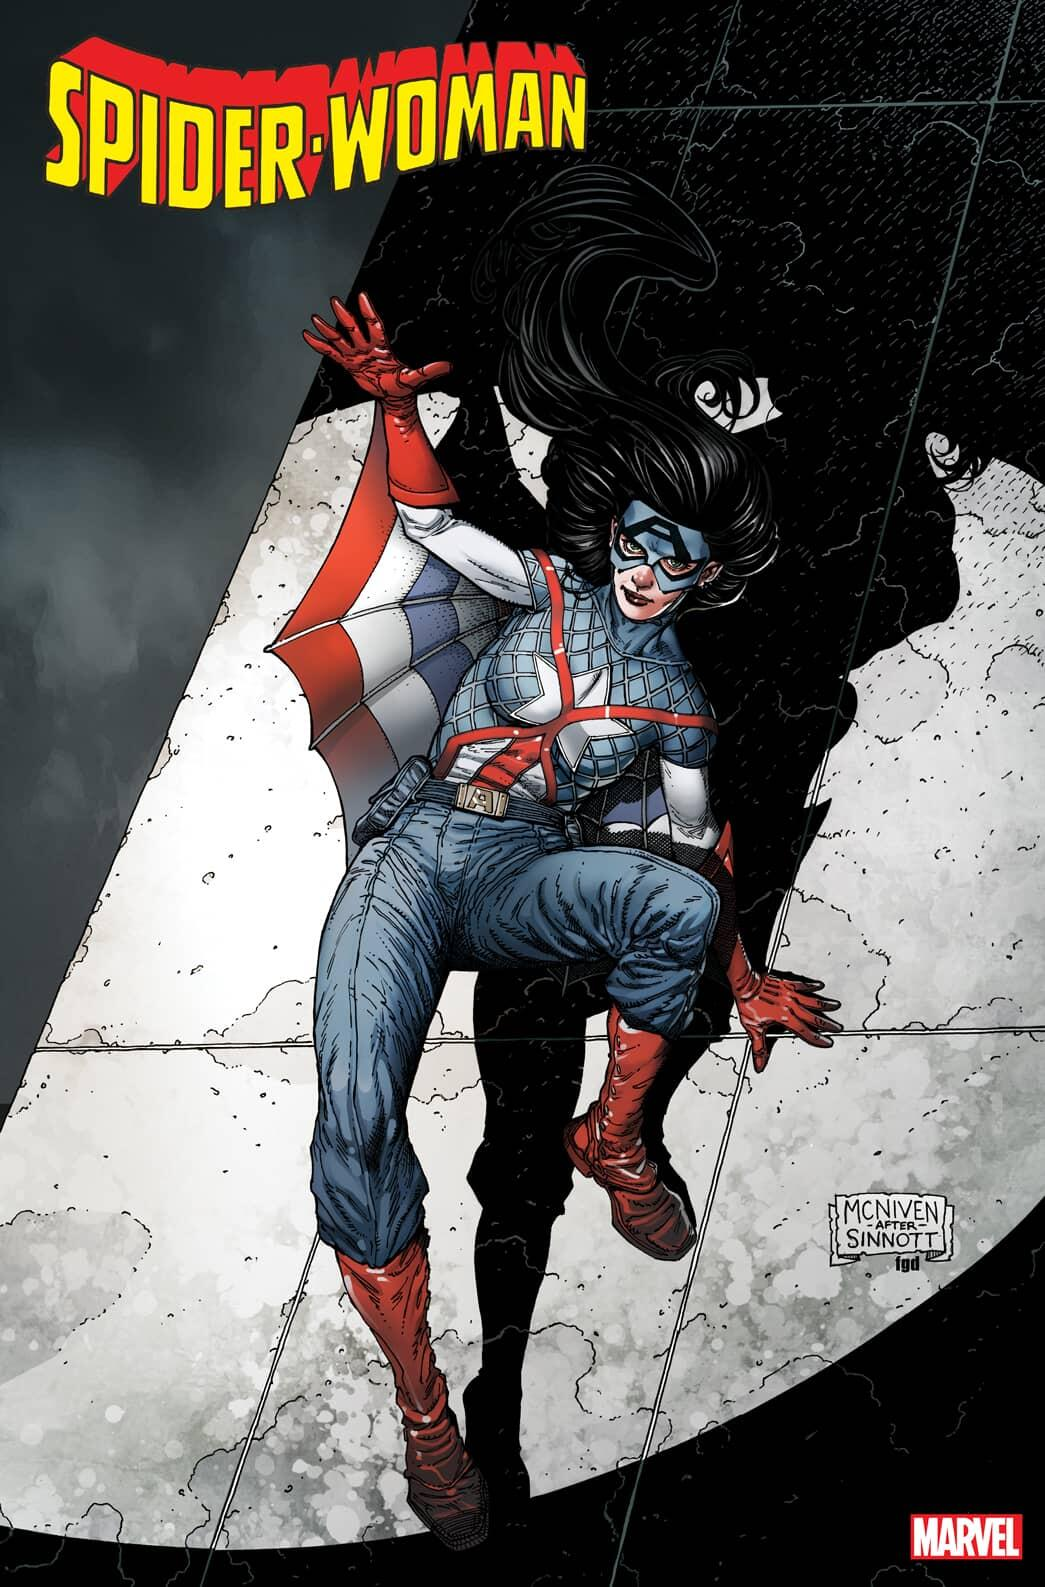 SPIDER-WOMAN #13 CAPTAIN AMERICA 80TH VARIANT COVER by STEVE MCNIVEN & FRANK D'ARMATA